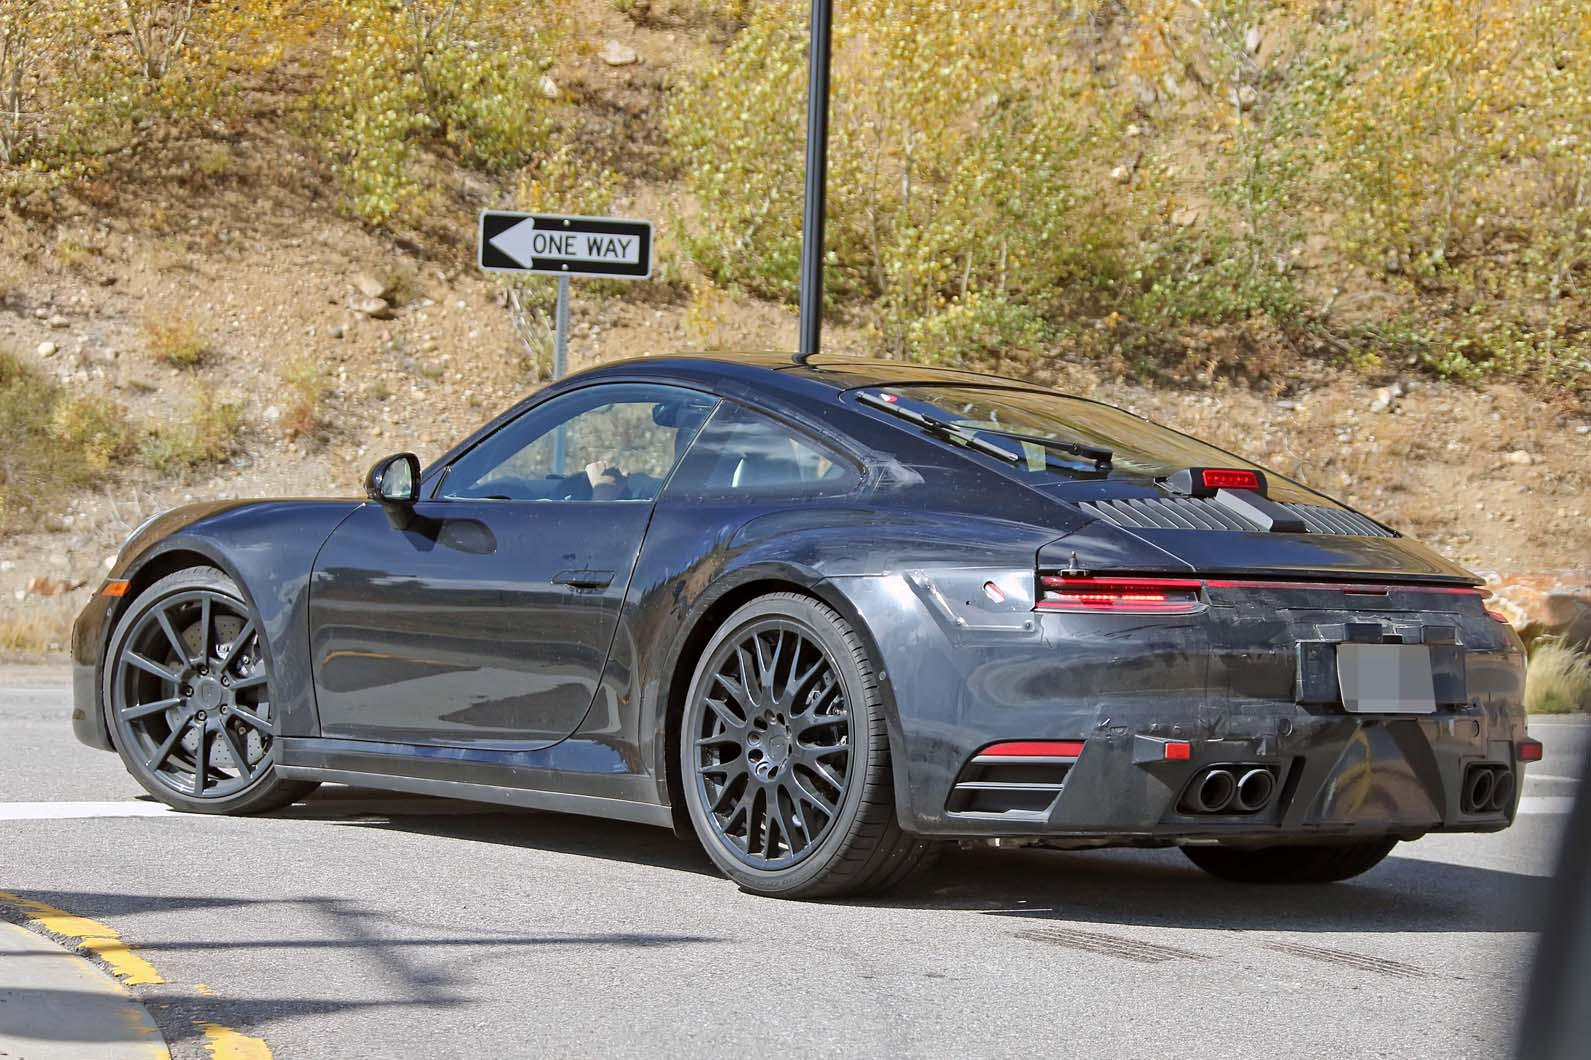 2019 Porsche 911: new video shows 992 Carrera 4S at the Nurburgring | Autocar